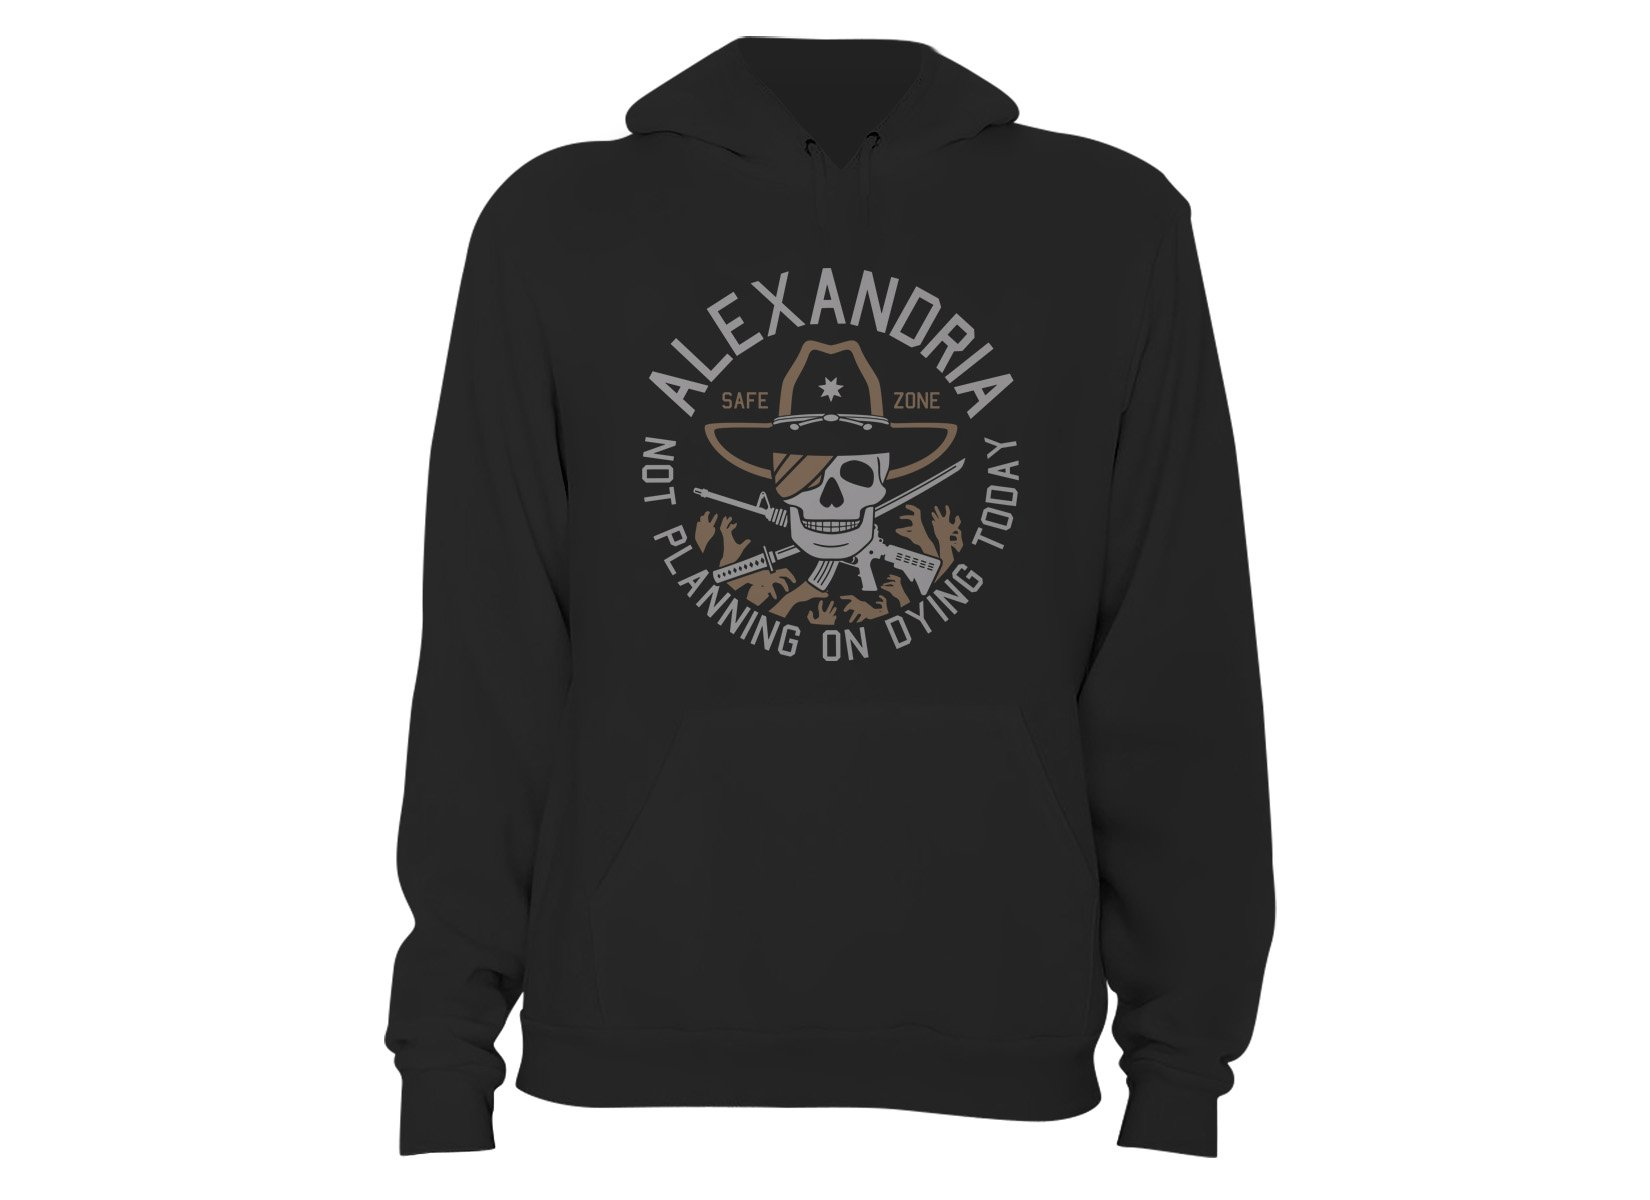 Alexandria Safe Zone on Hoodie